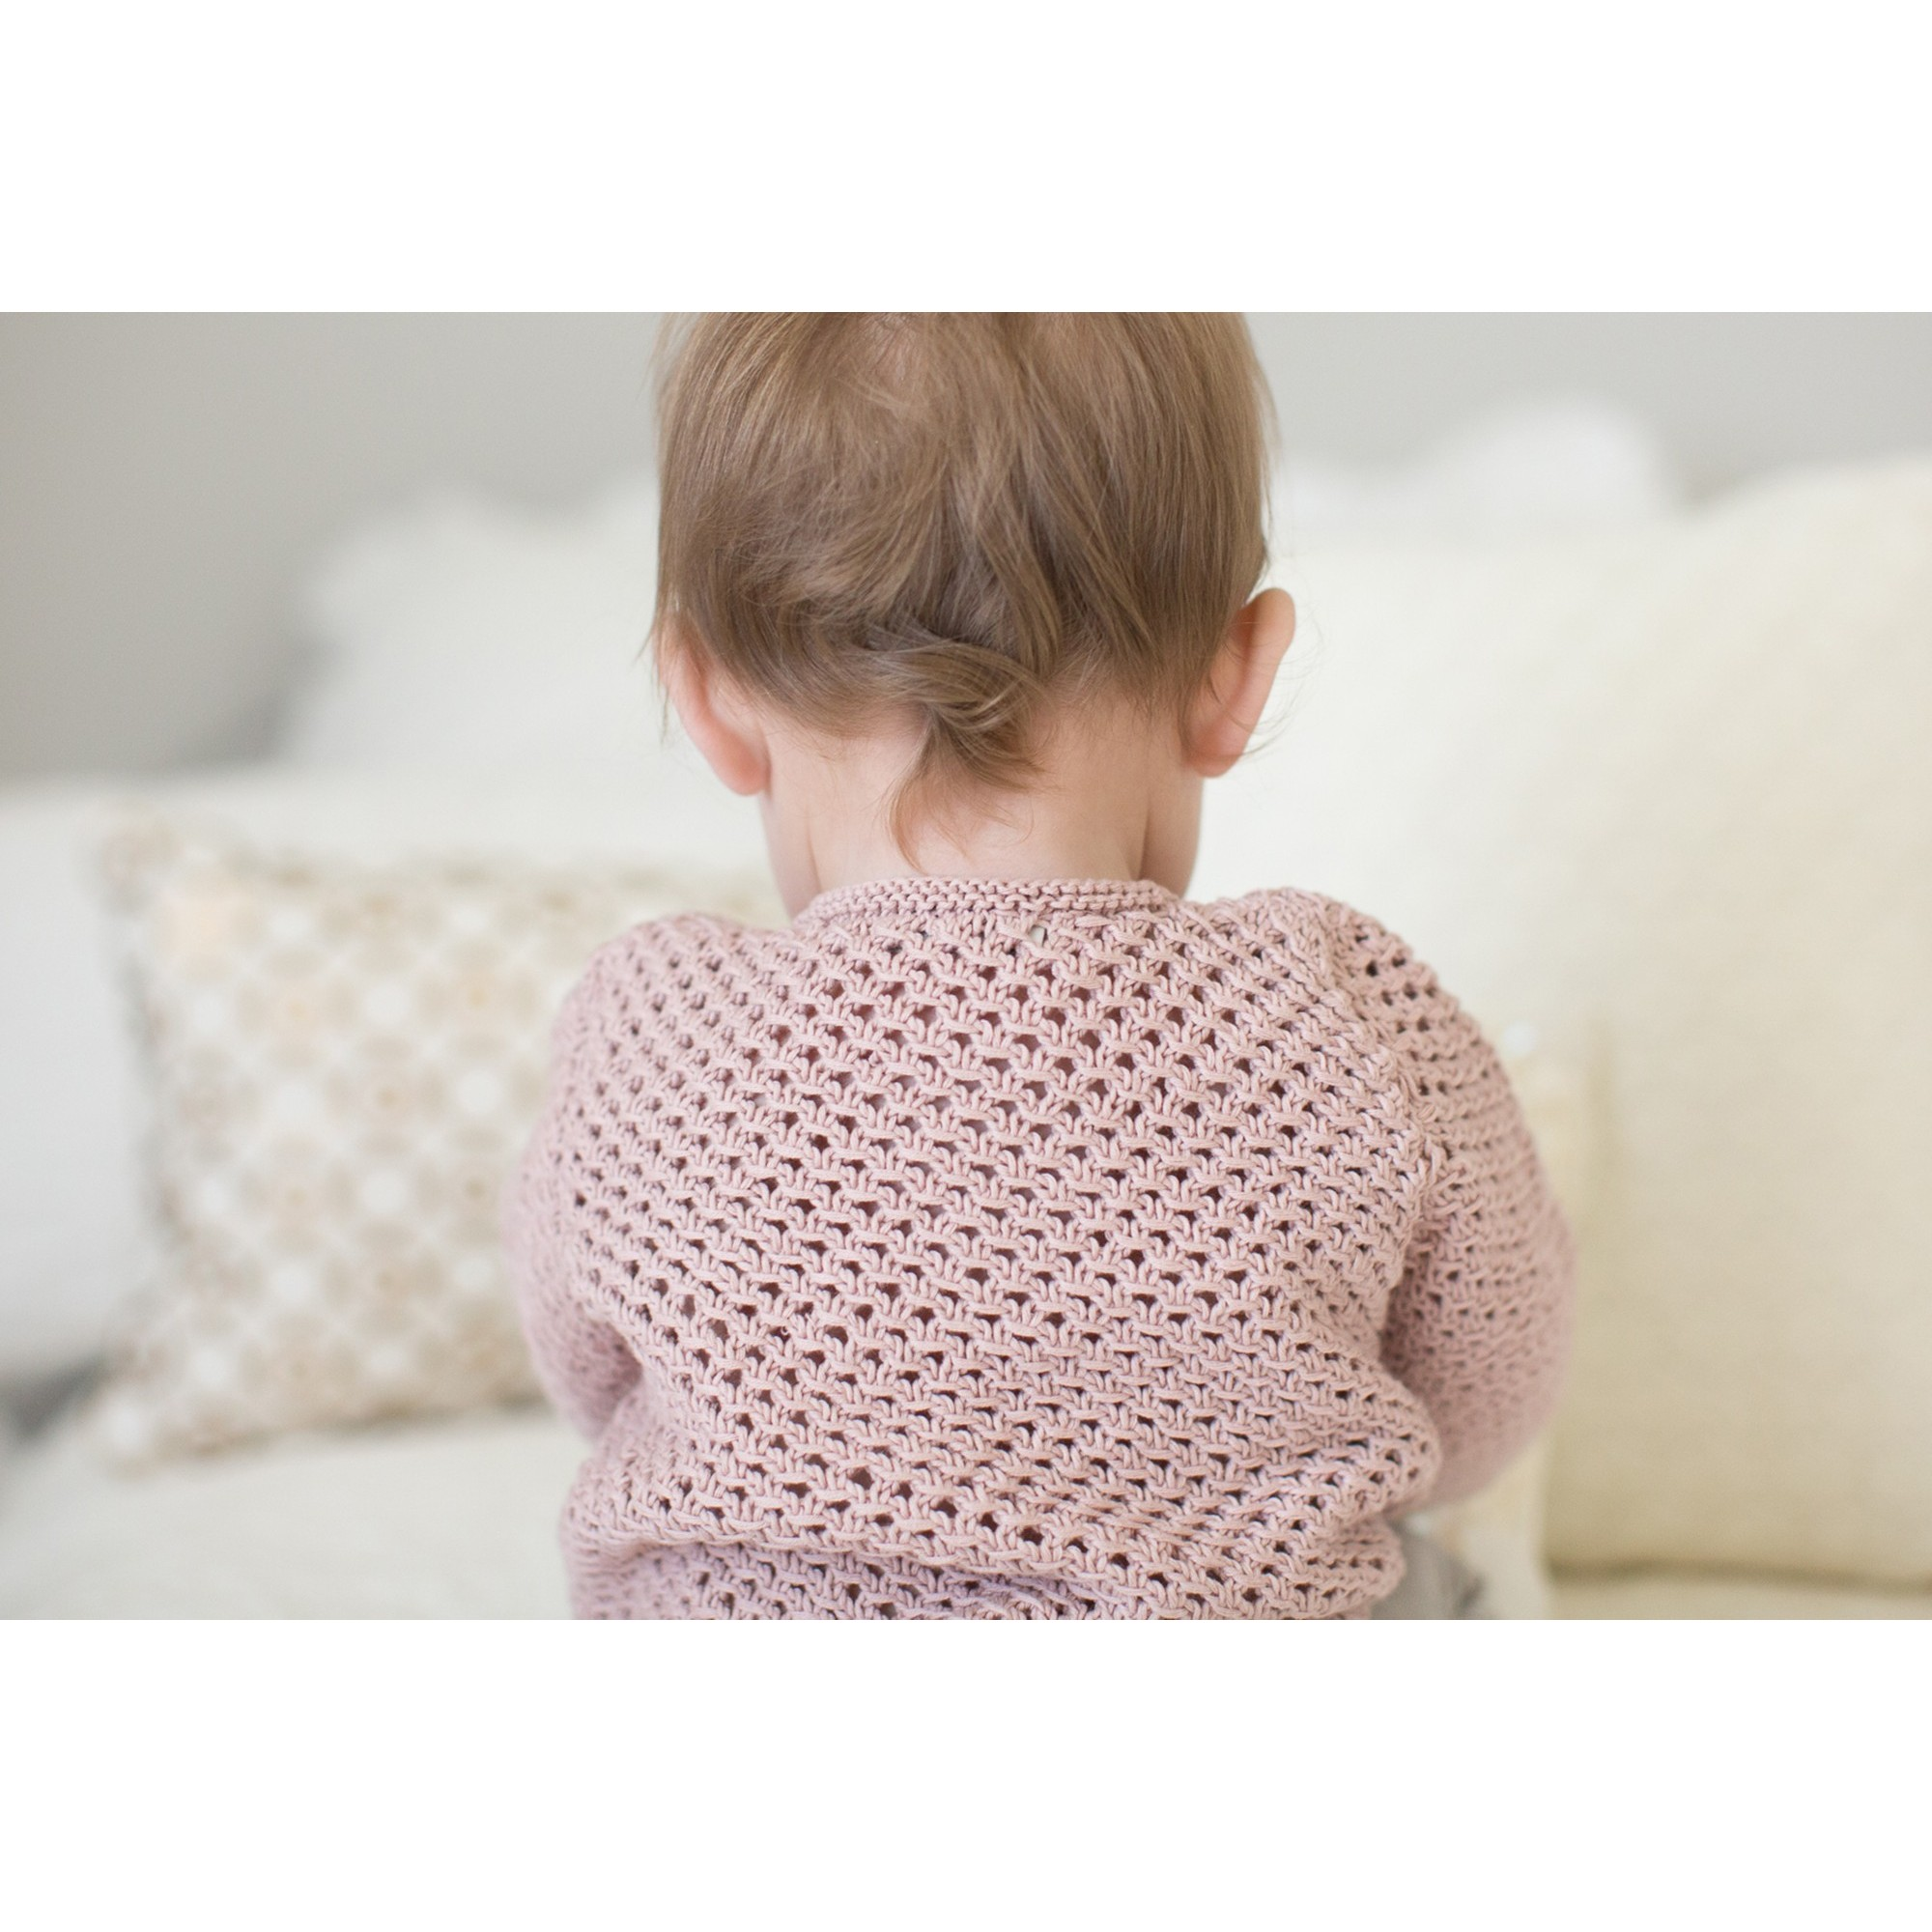 Joséphine cardigan for baby - opaline pink color - worn (seen from the back)